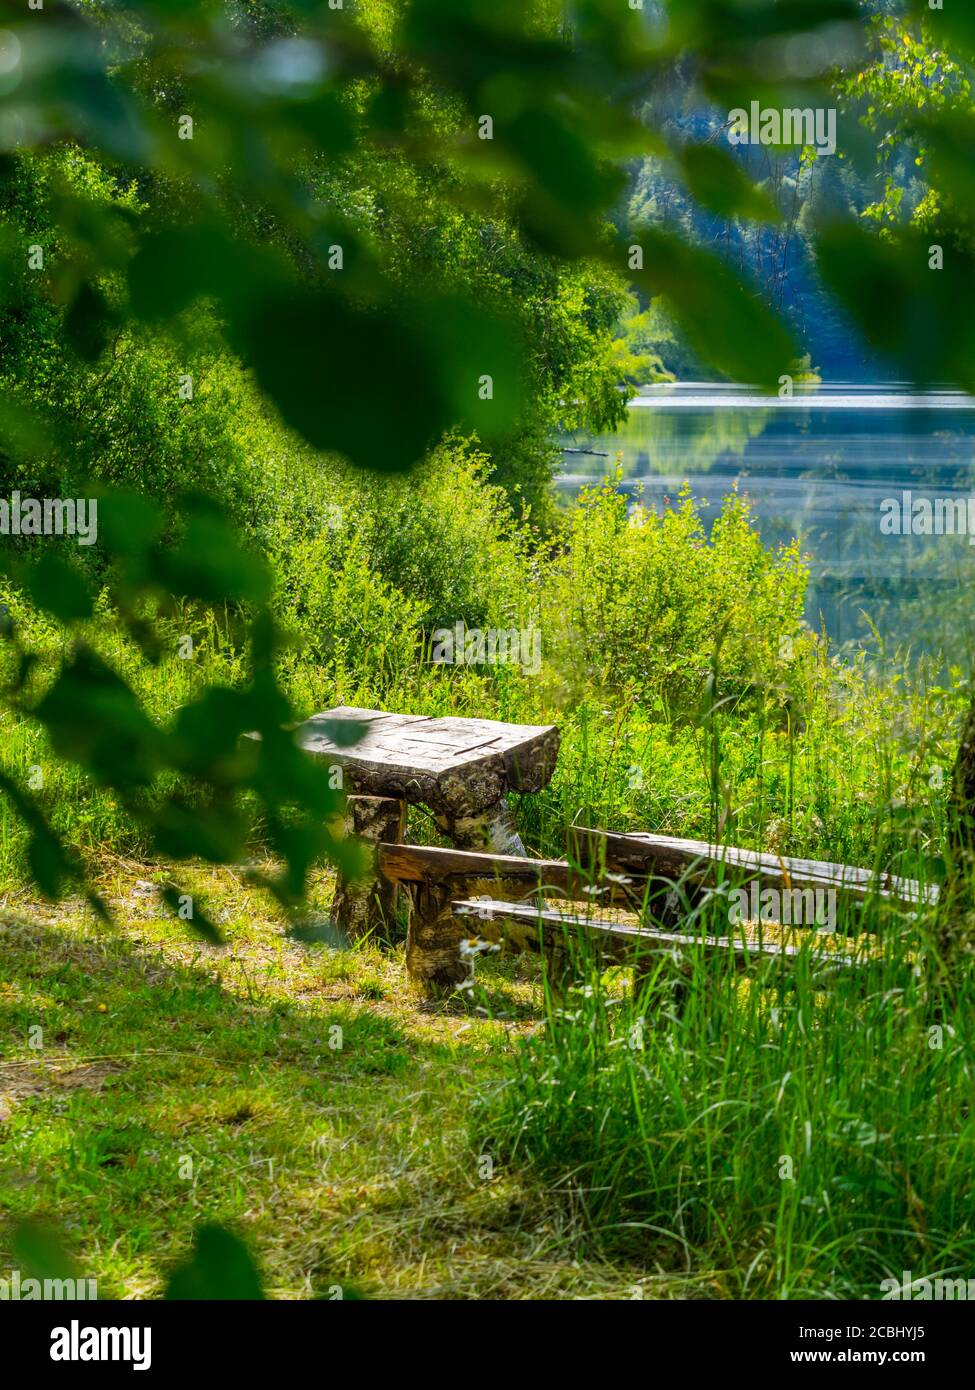 Green forest pretty beautiful preserved nature natural environment Spring season in lake Mrzla vodica in Croatia Europe dreamy Stock Photo